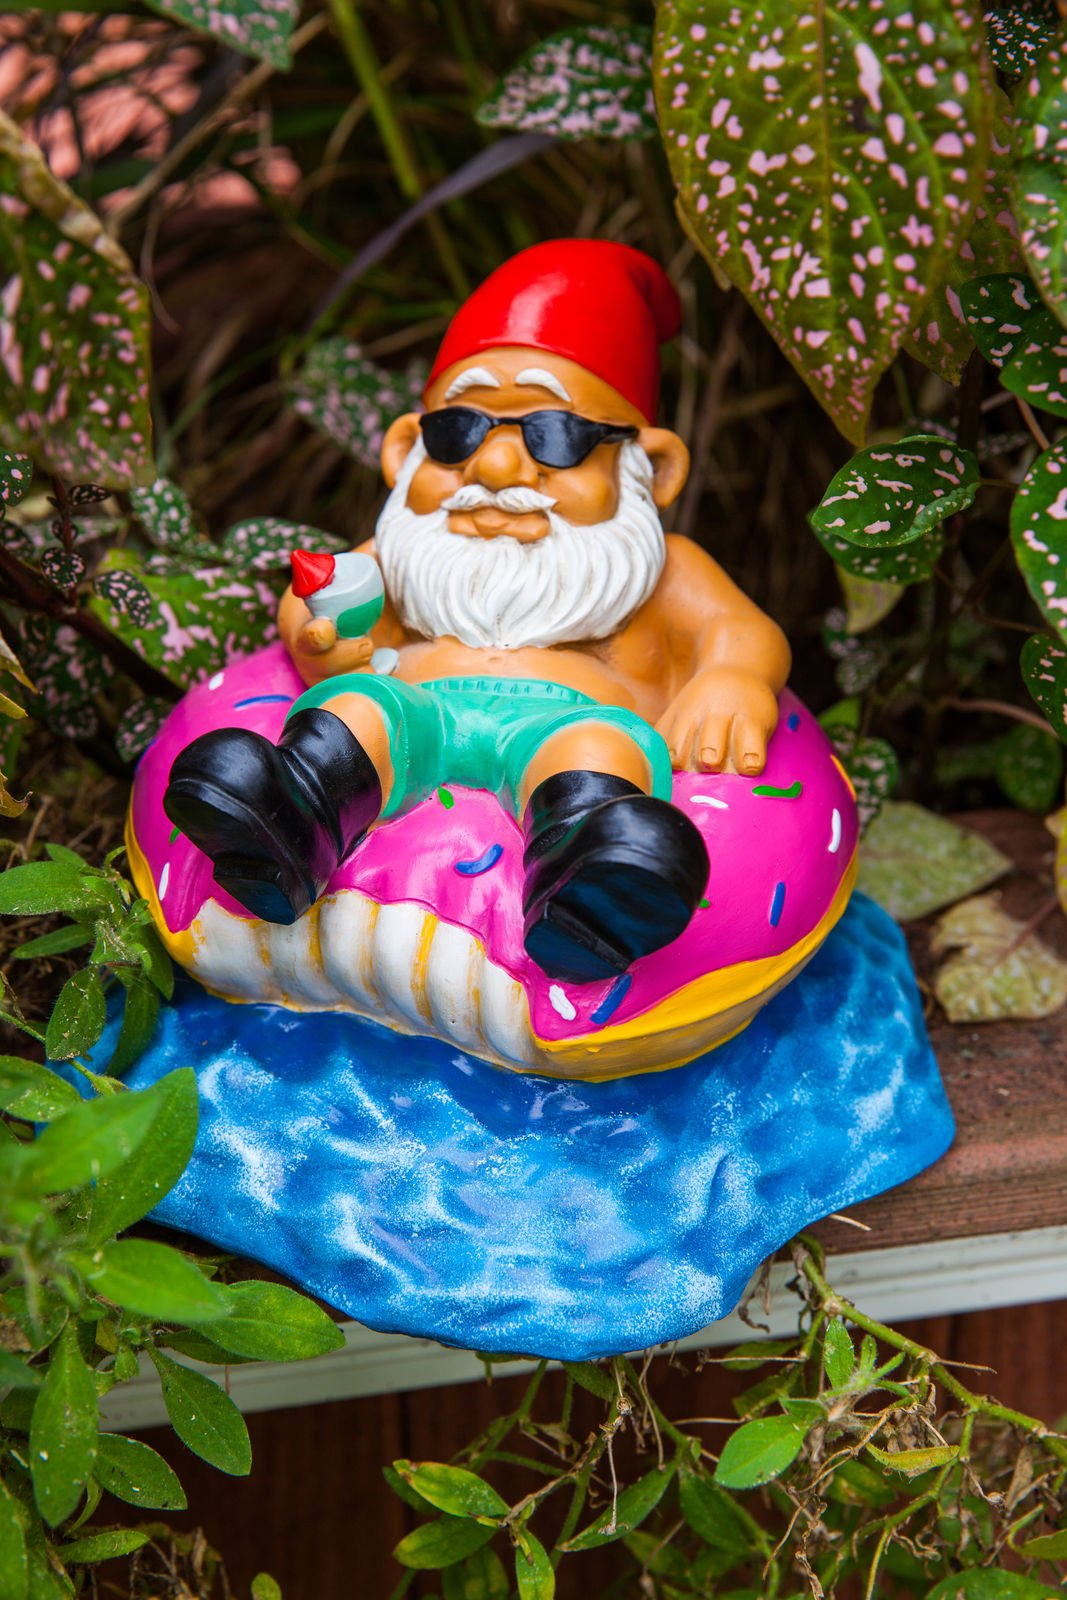 BigMouth Inc Donut Worry Be Happy Garden Gnome, 7-inch Tall Funny Lawn Gnome Statue, Garden Donut Decoration by BigMouth Inc (Image #2)